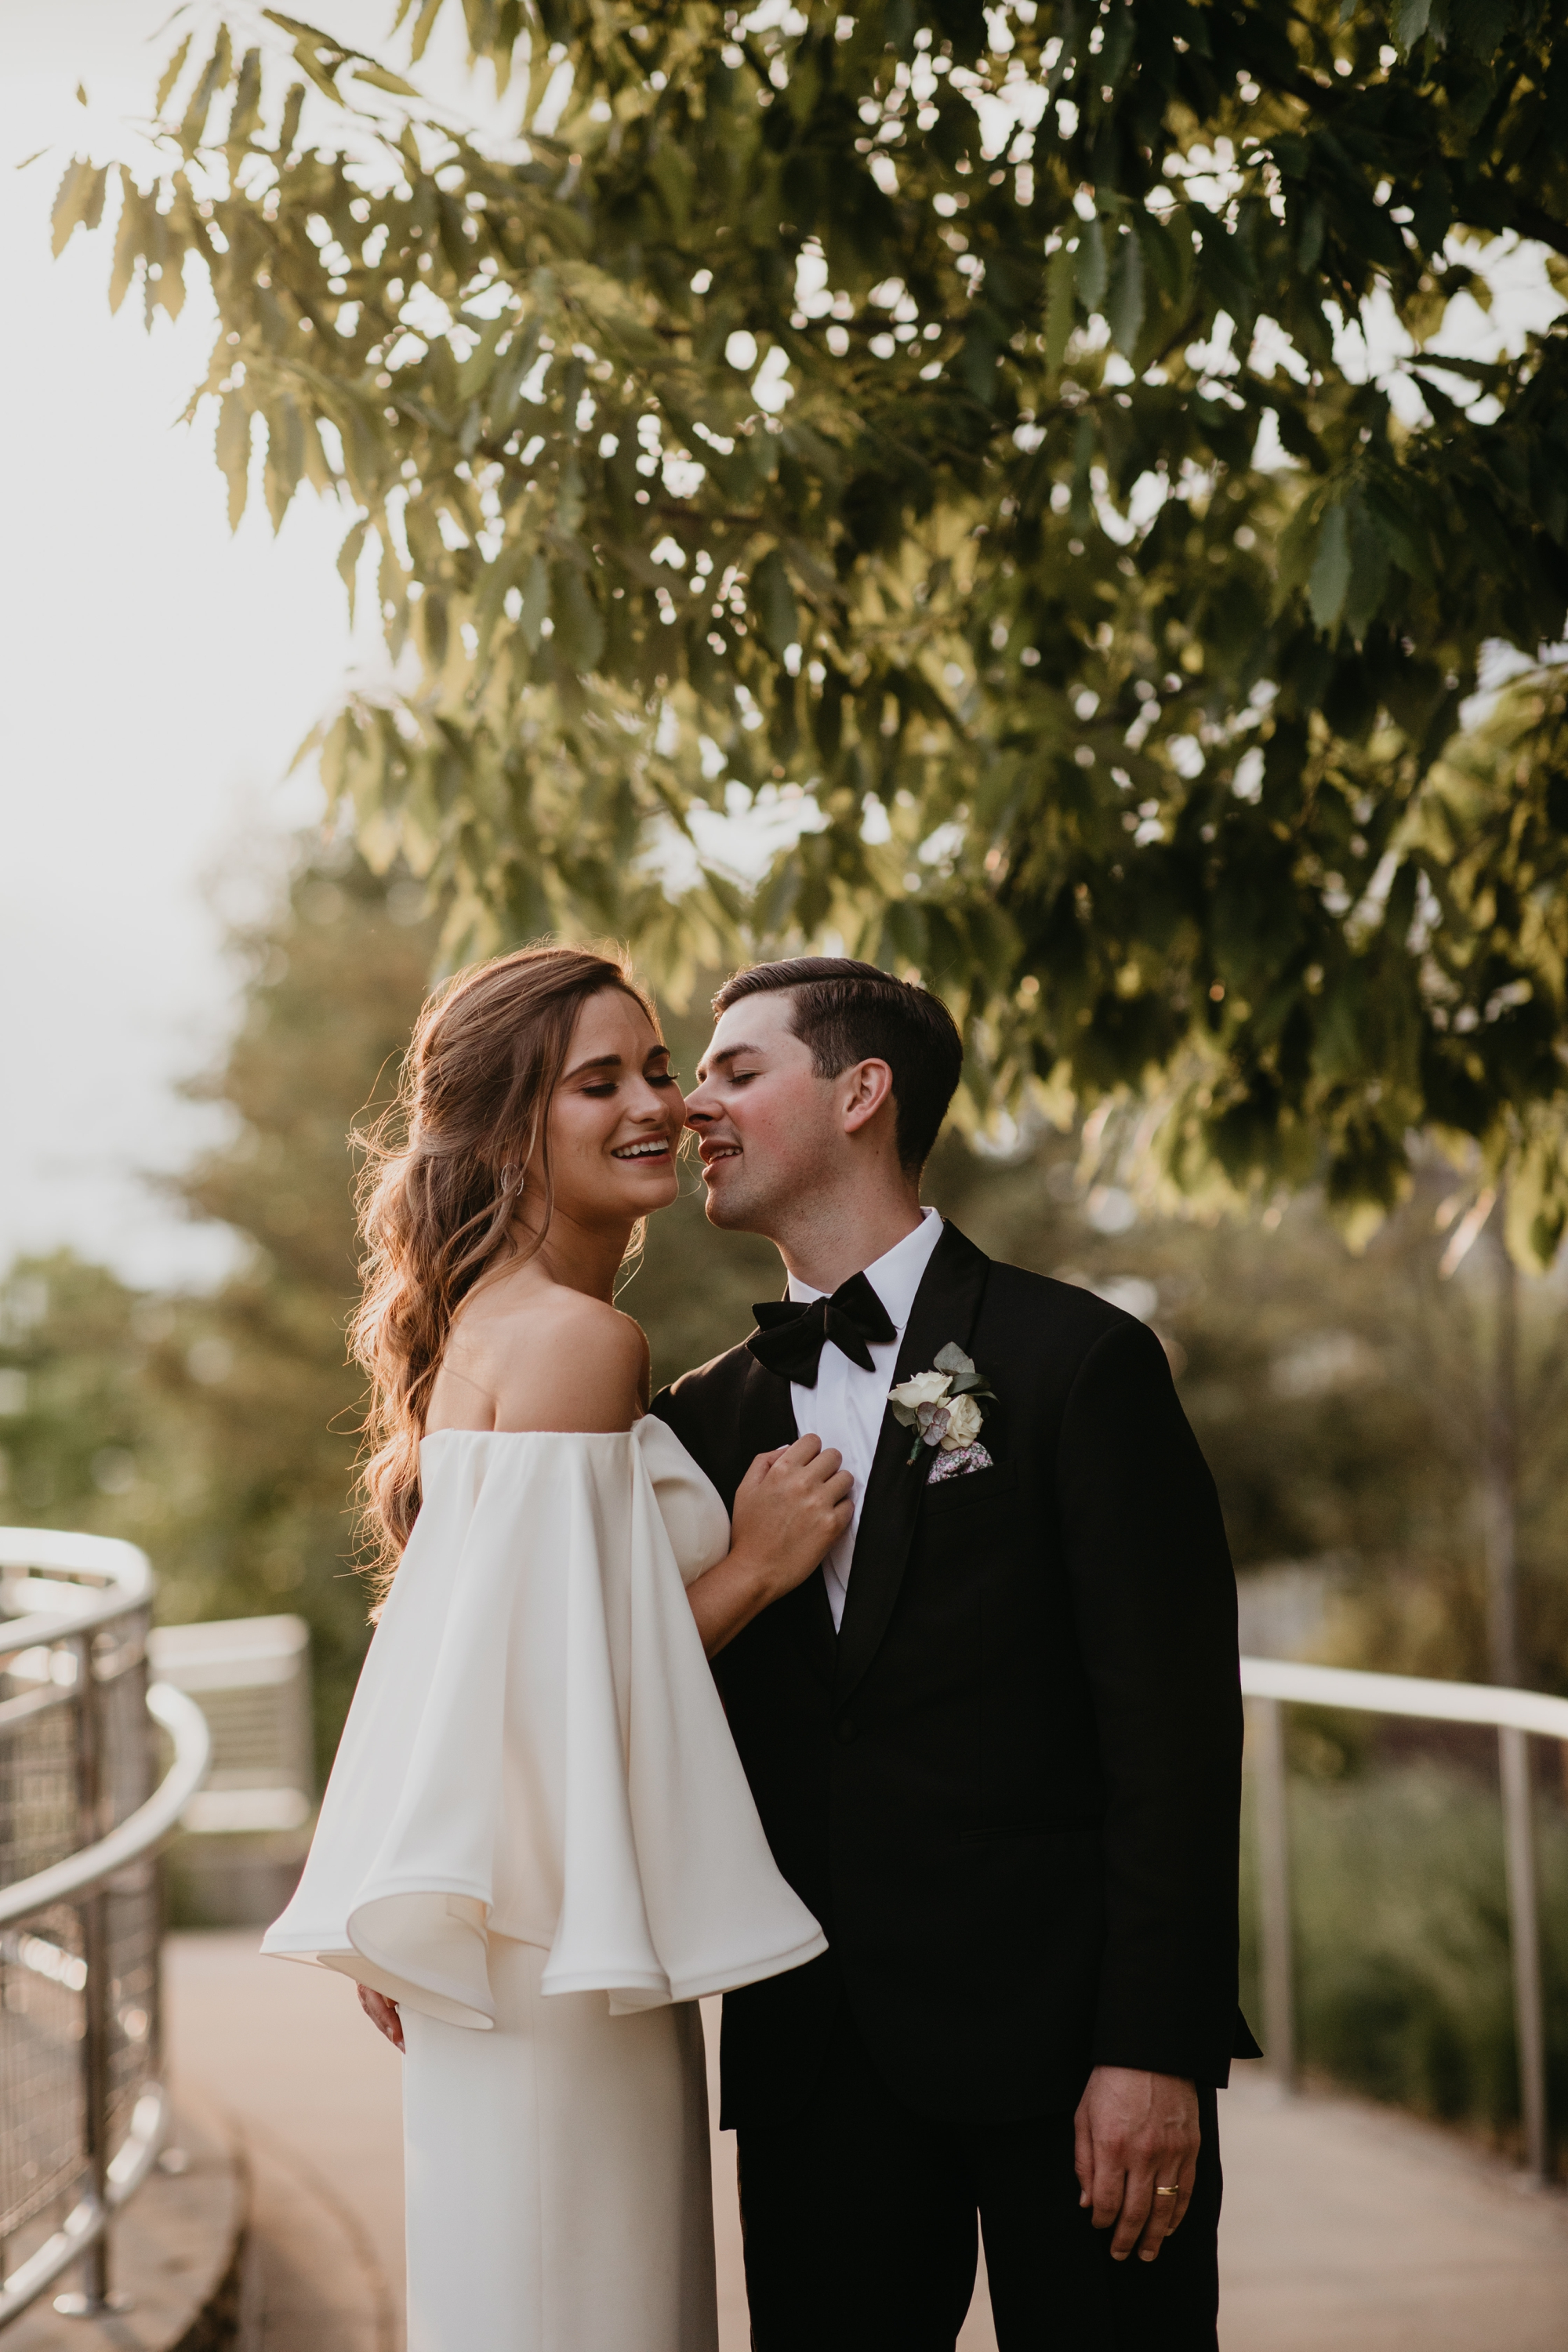 Pittsburgh wedding photography at Phipps conservatory